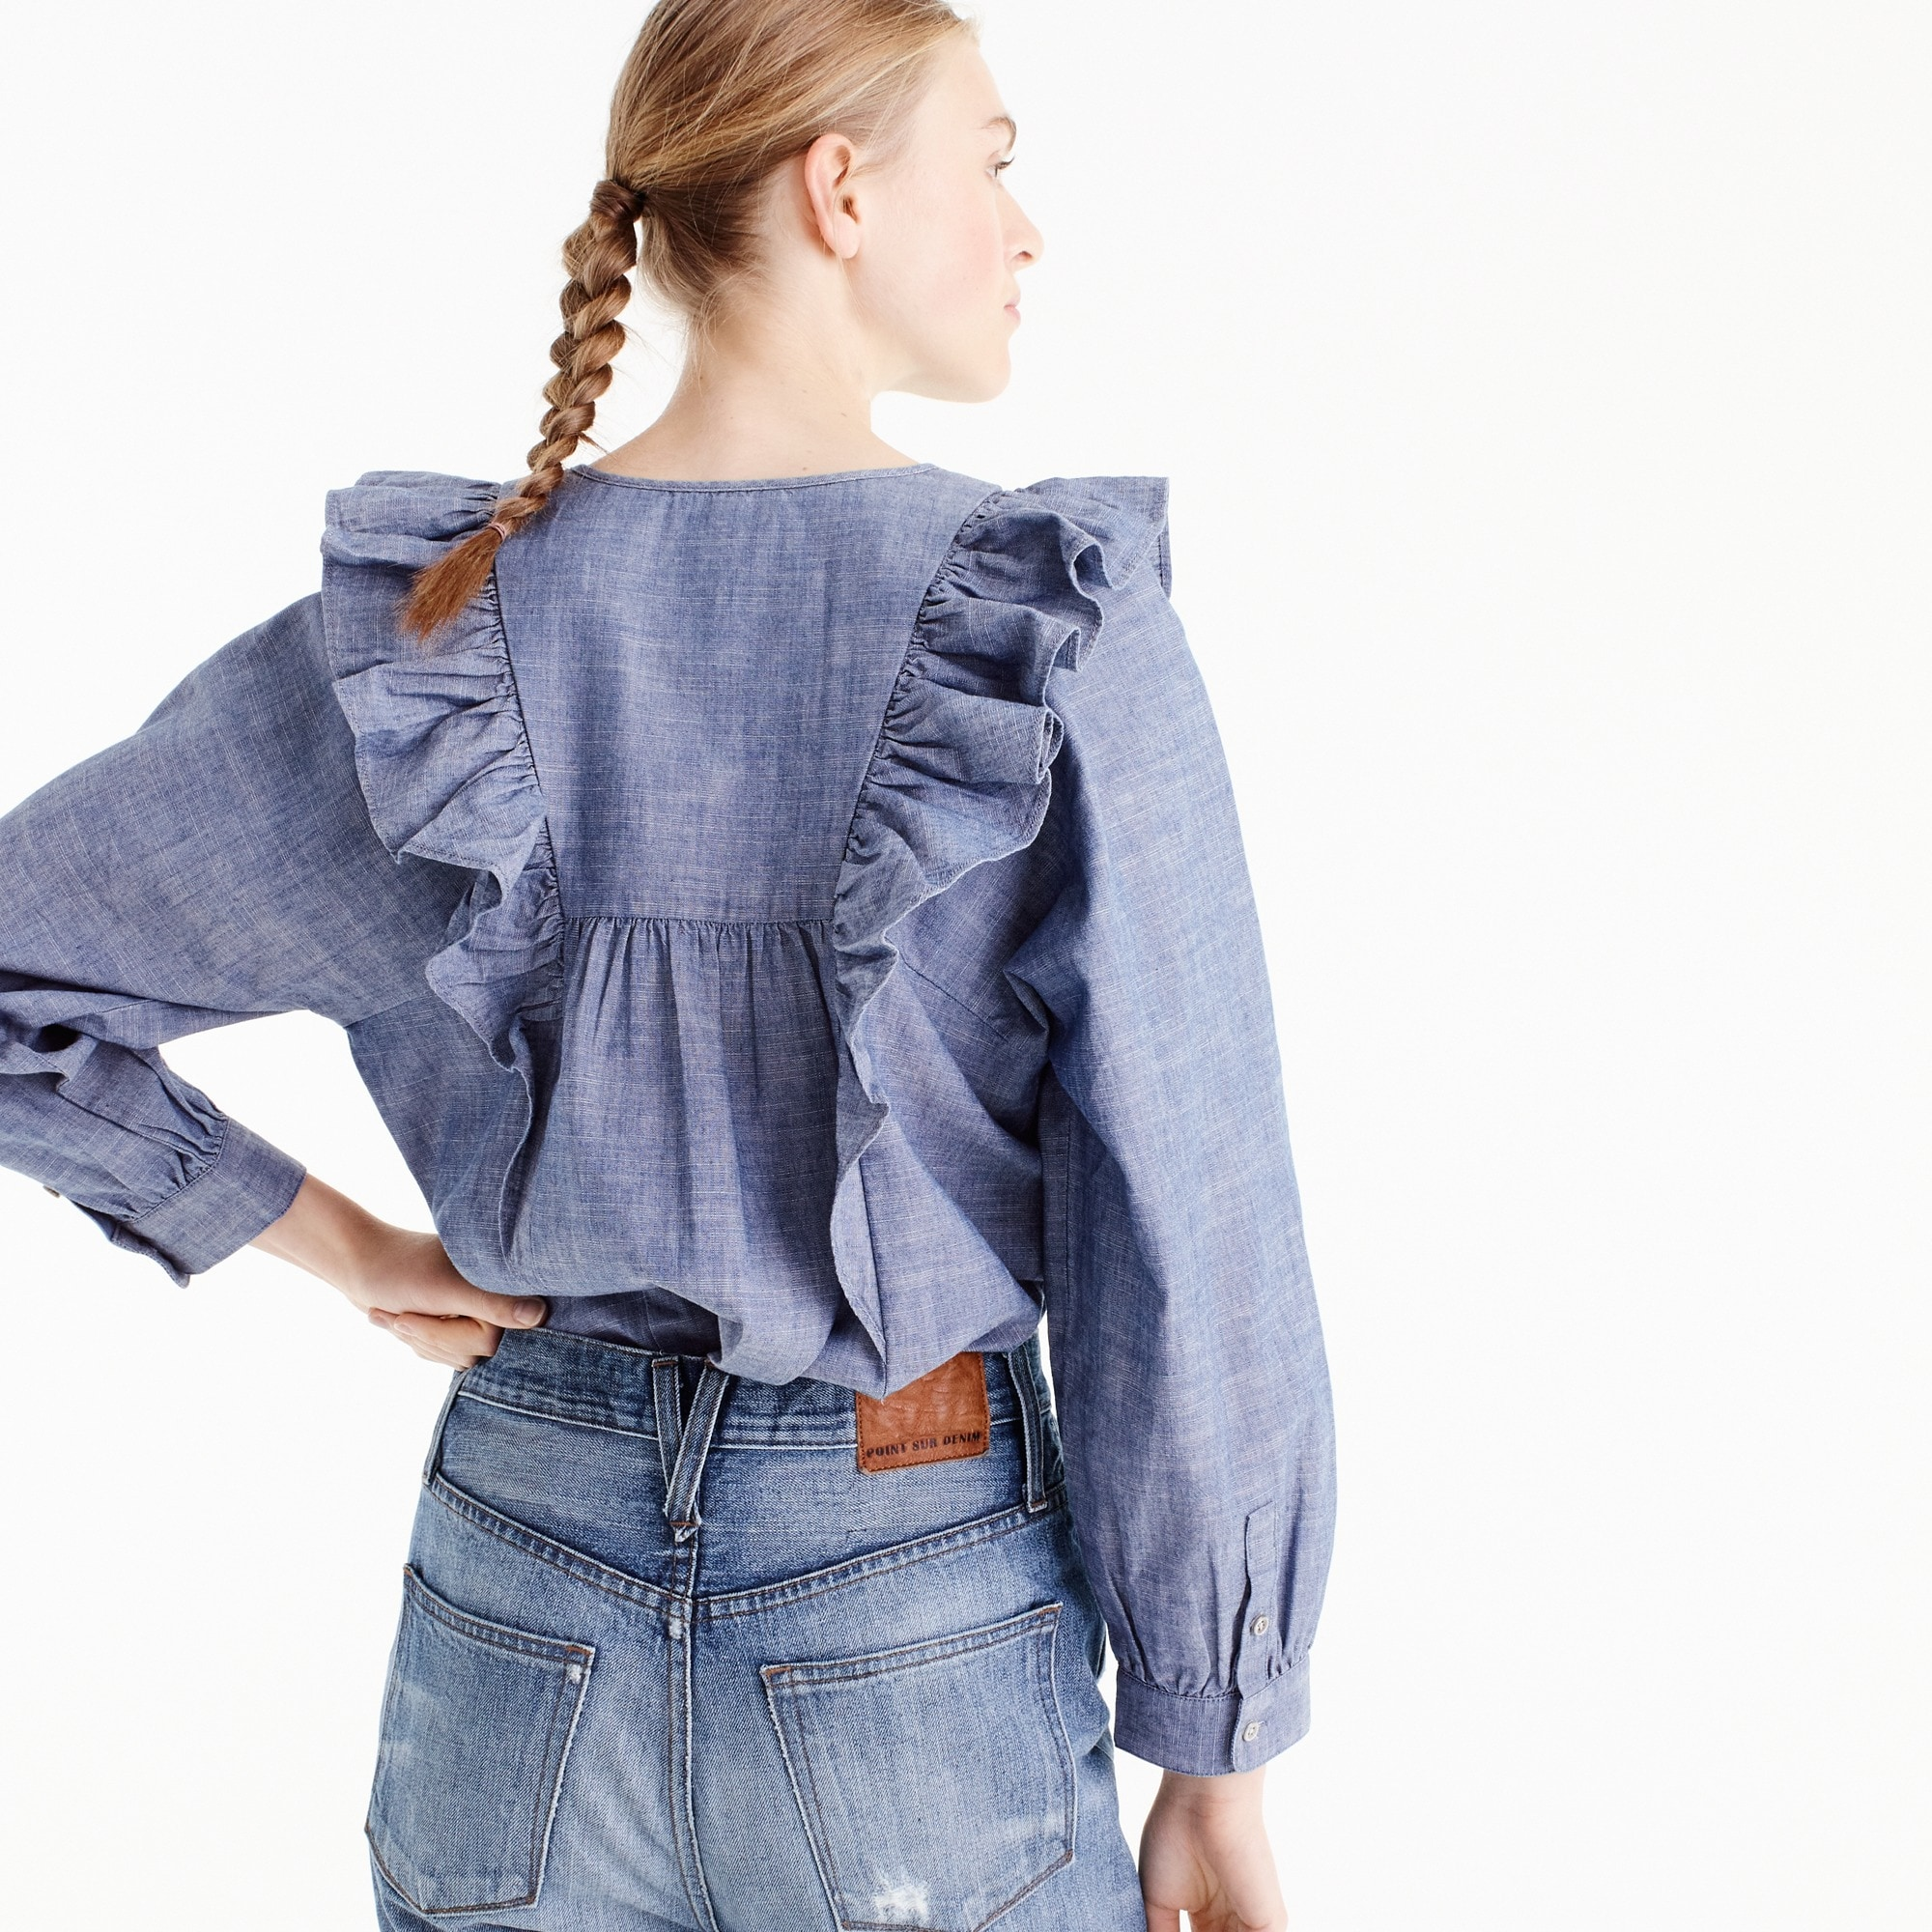 Image 3 for Tall ruffle-front chambray top